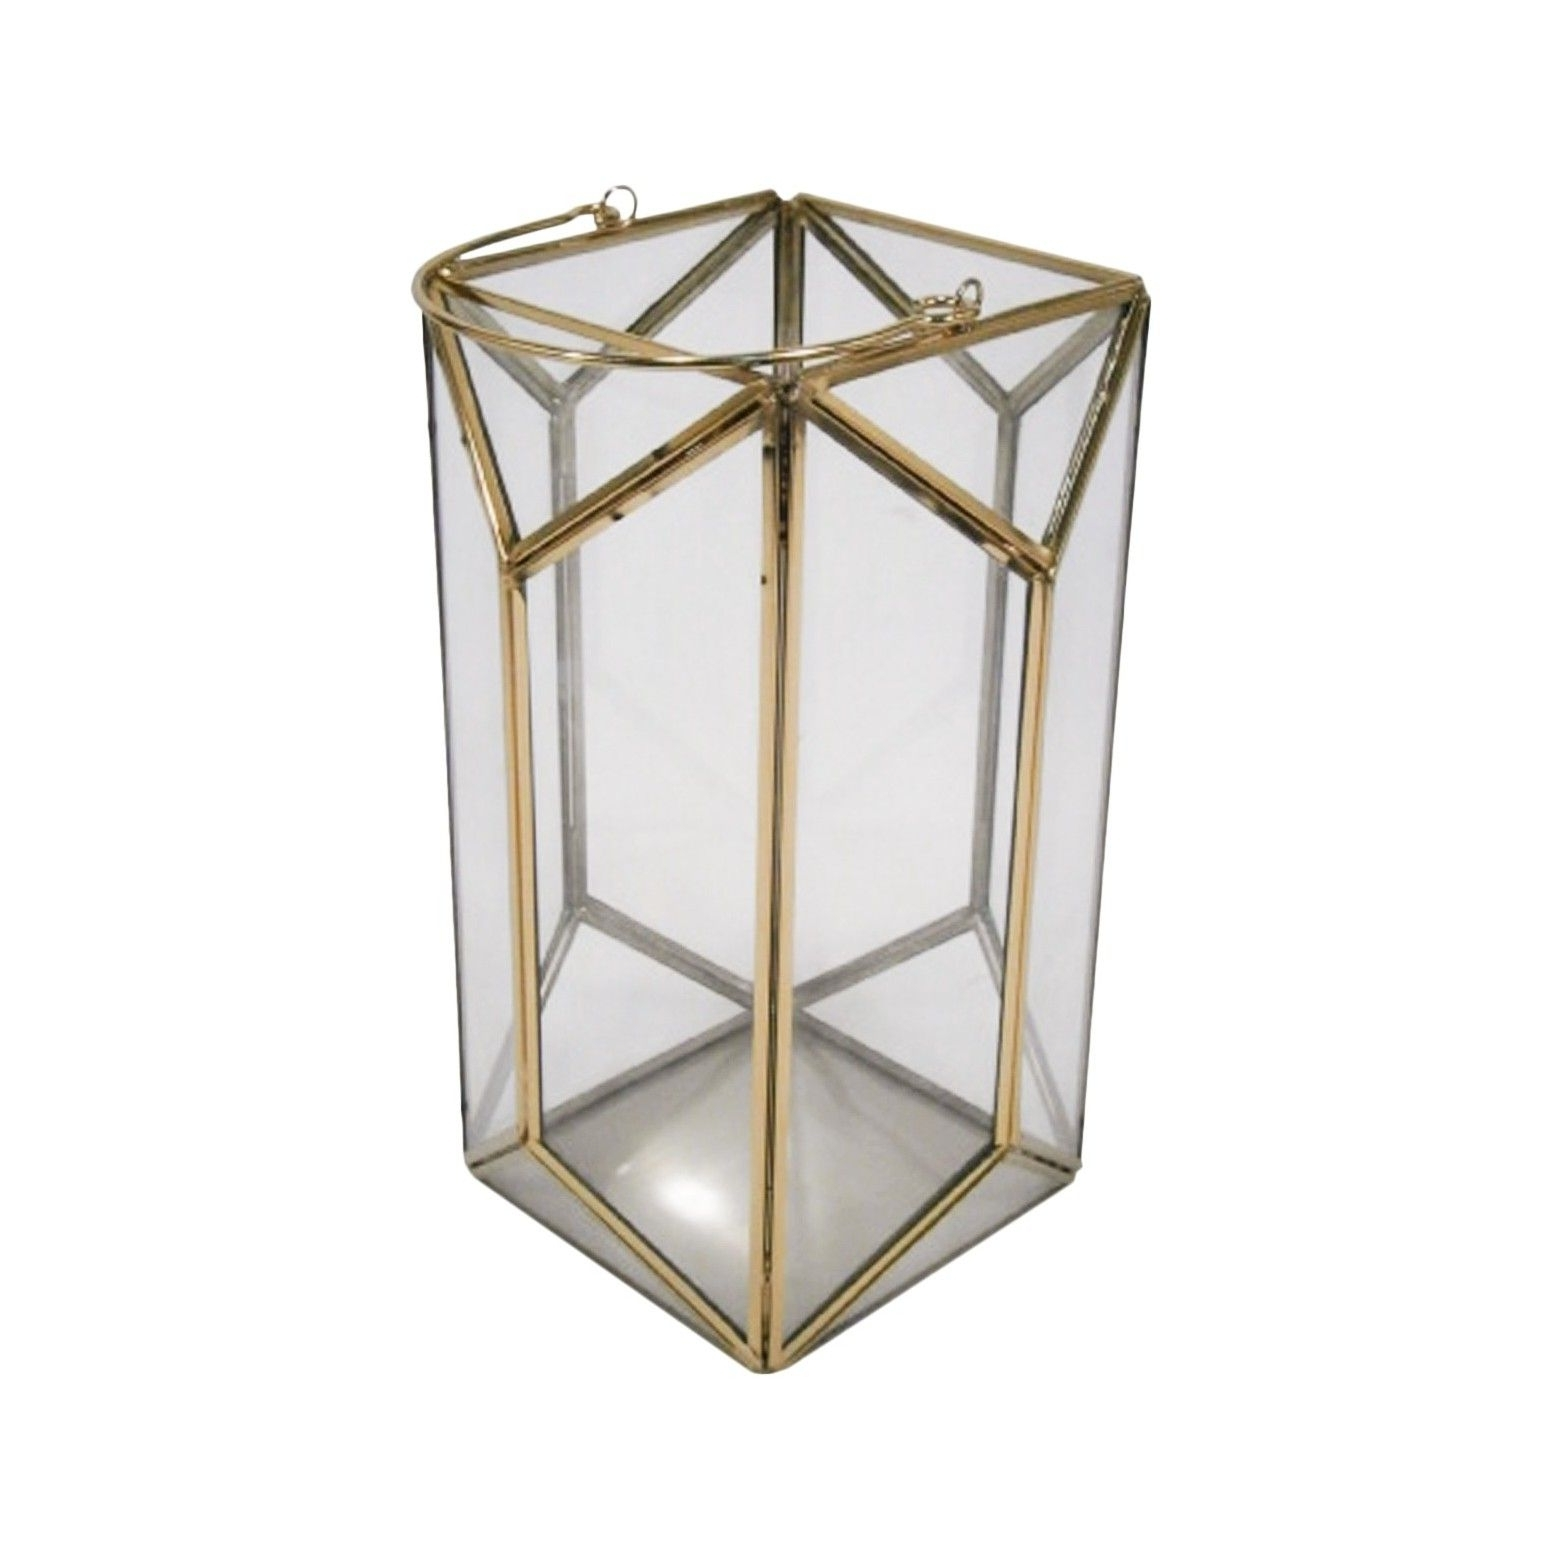 11 Outdoor Lantern Stainless Steel & Glass – Plated Gold – Threshold Pertaining To Well Known Gold Outdoor Lanterns (Gallery 19 of 20)